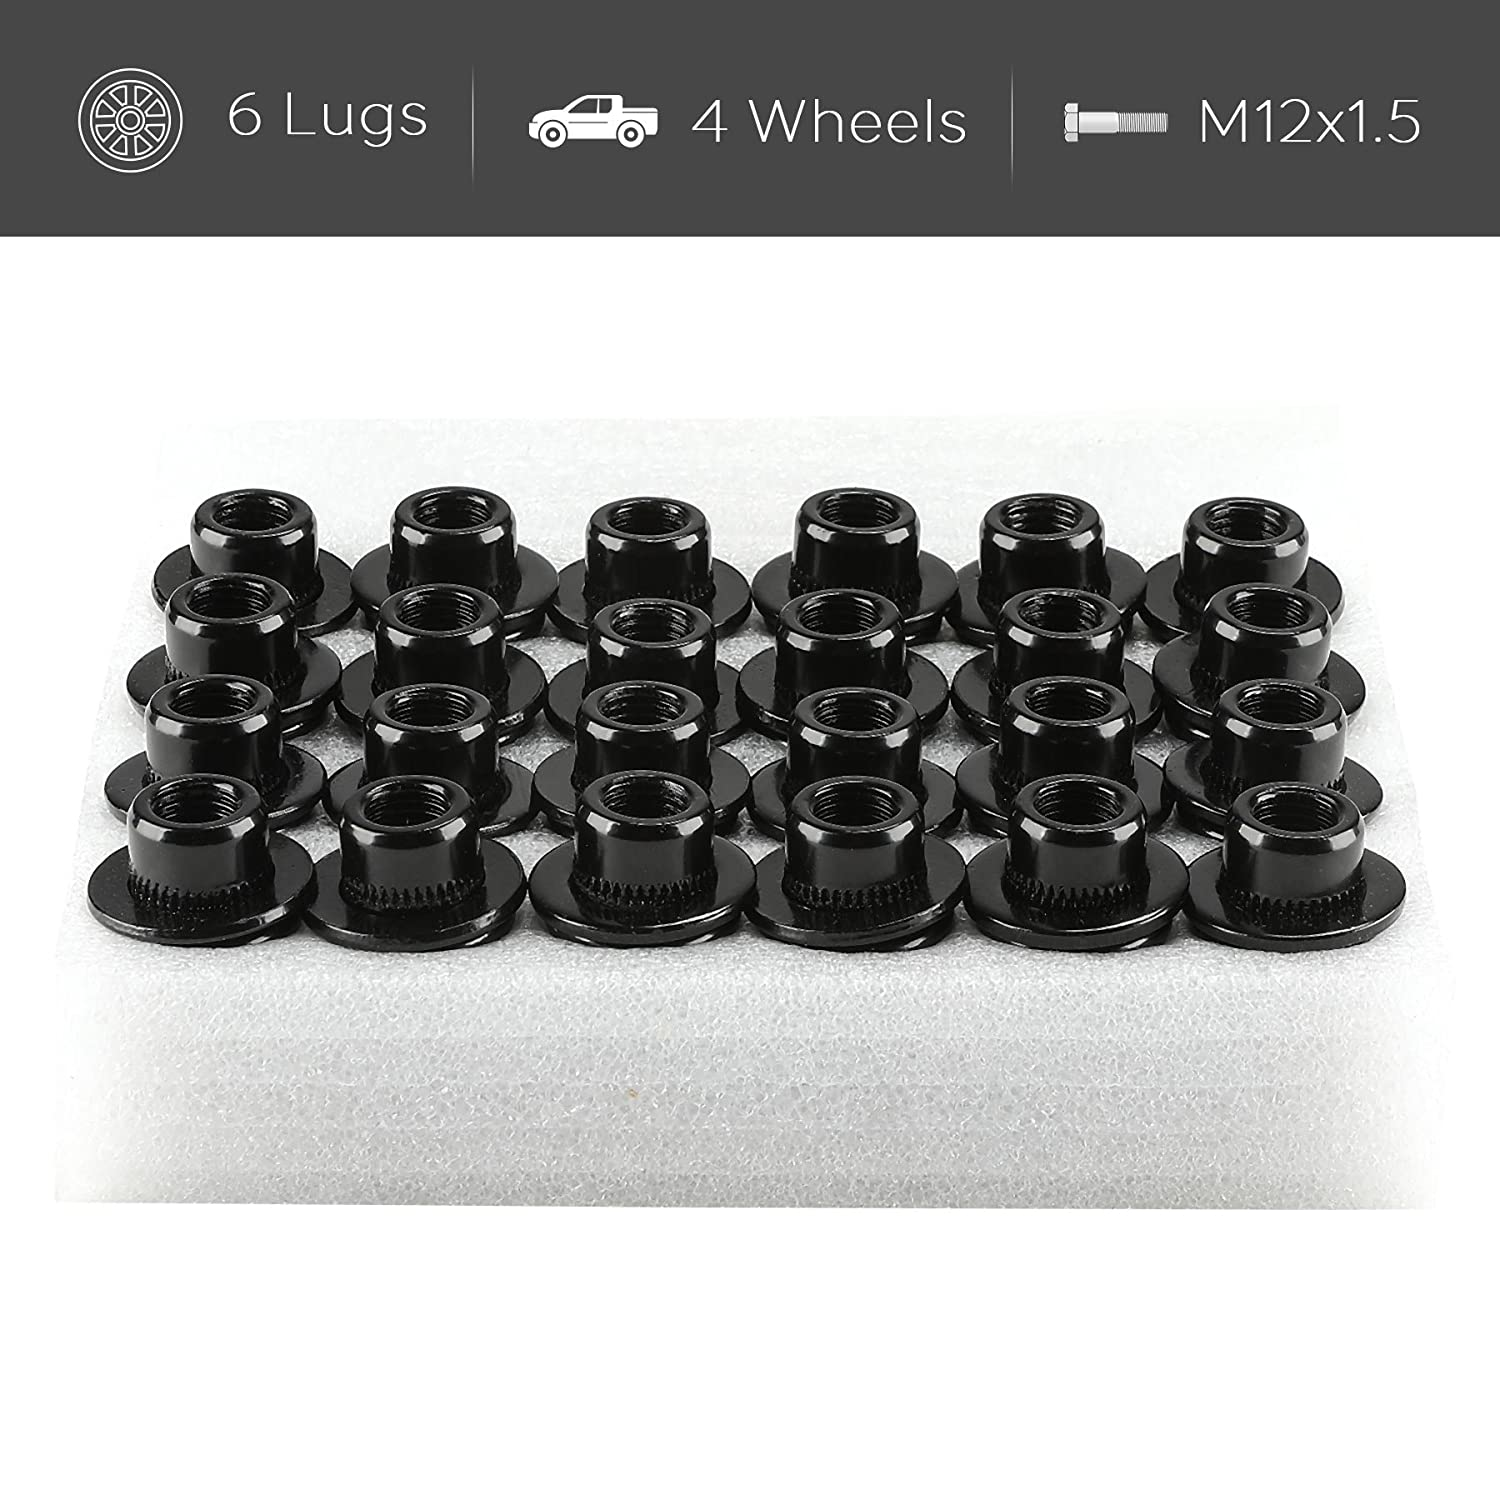 OrionMotorTech 24PCS Black 12x1.5 Wheel Lug Nuts Mag Seat with Washer 1.5 Tall /& 21mm Hex Fits Toyota Lexus Scion Isuzu OEM Mag Seat Factory Wheels